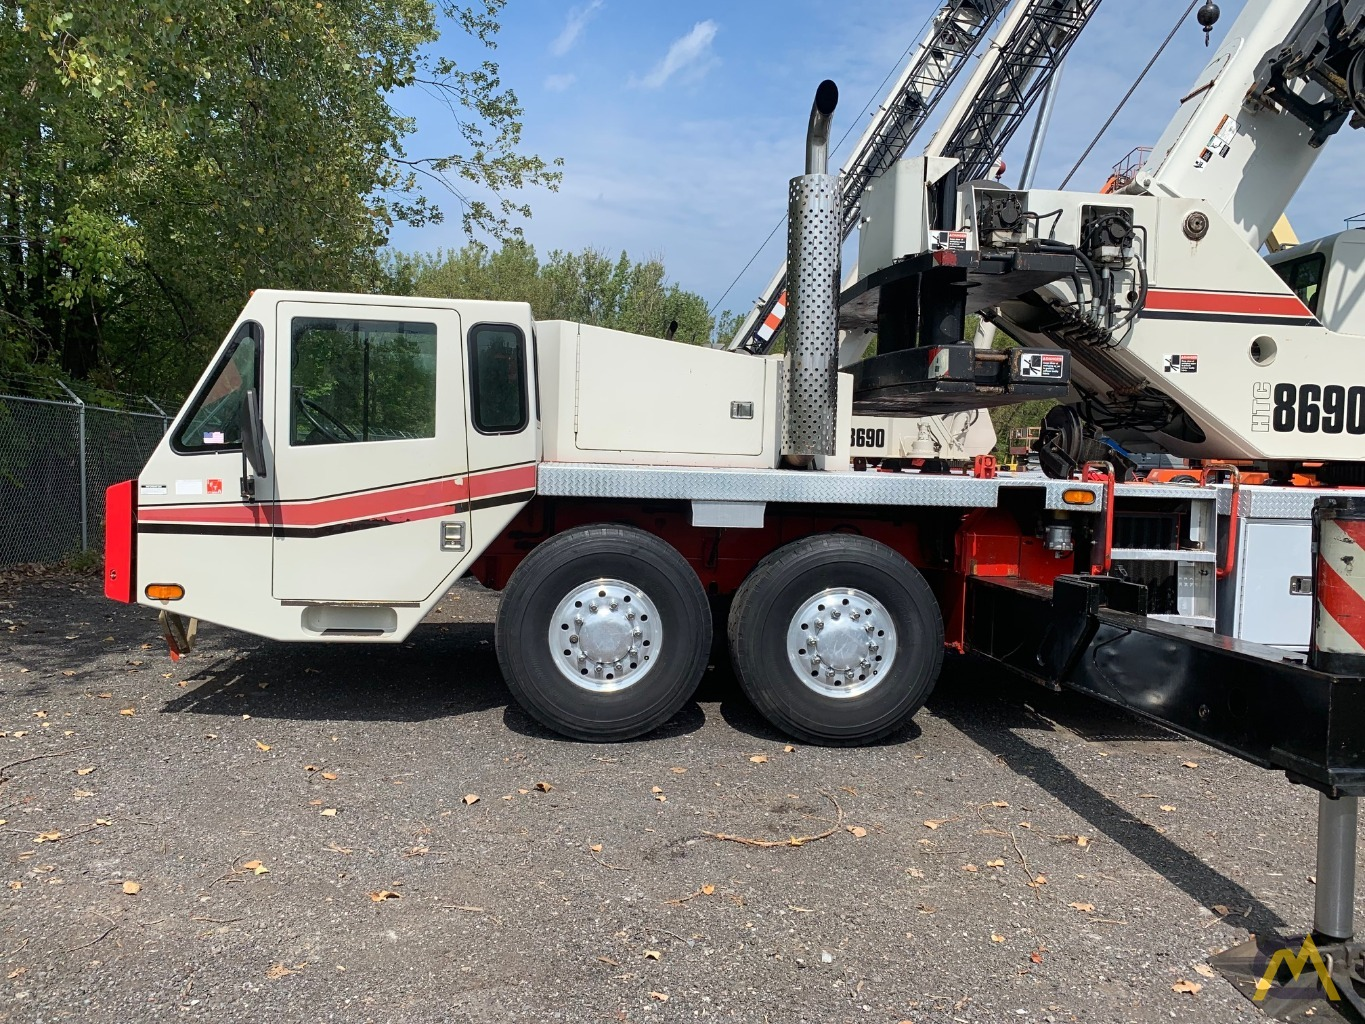 2007 Link-Belt HTC-8690 90-Ton Telescopic Truck Crane w/ Detroit Engine 11